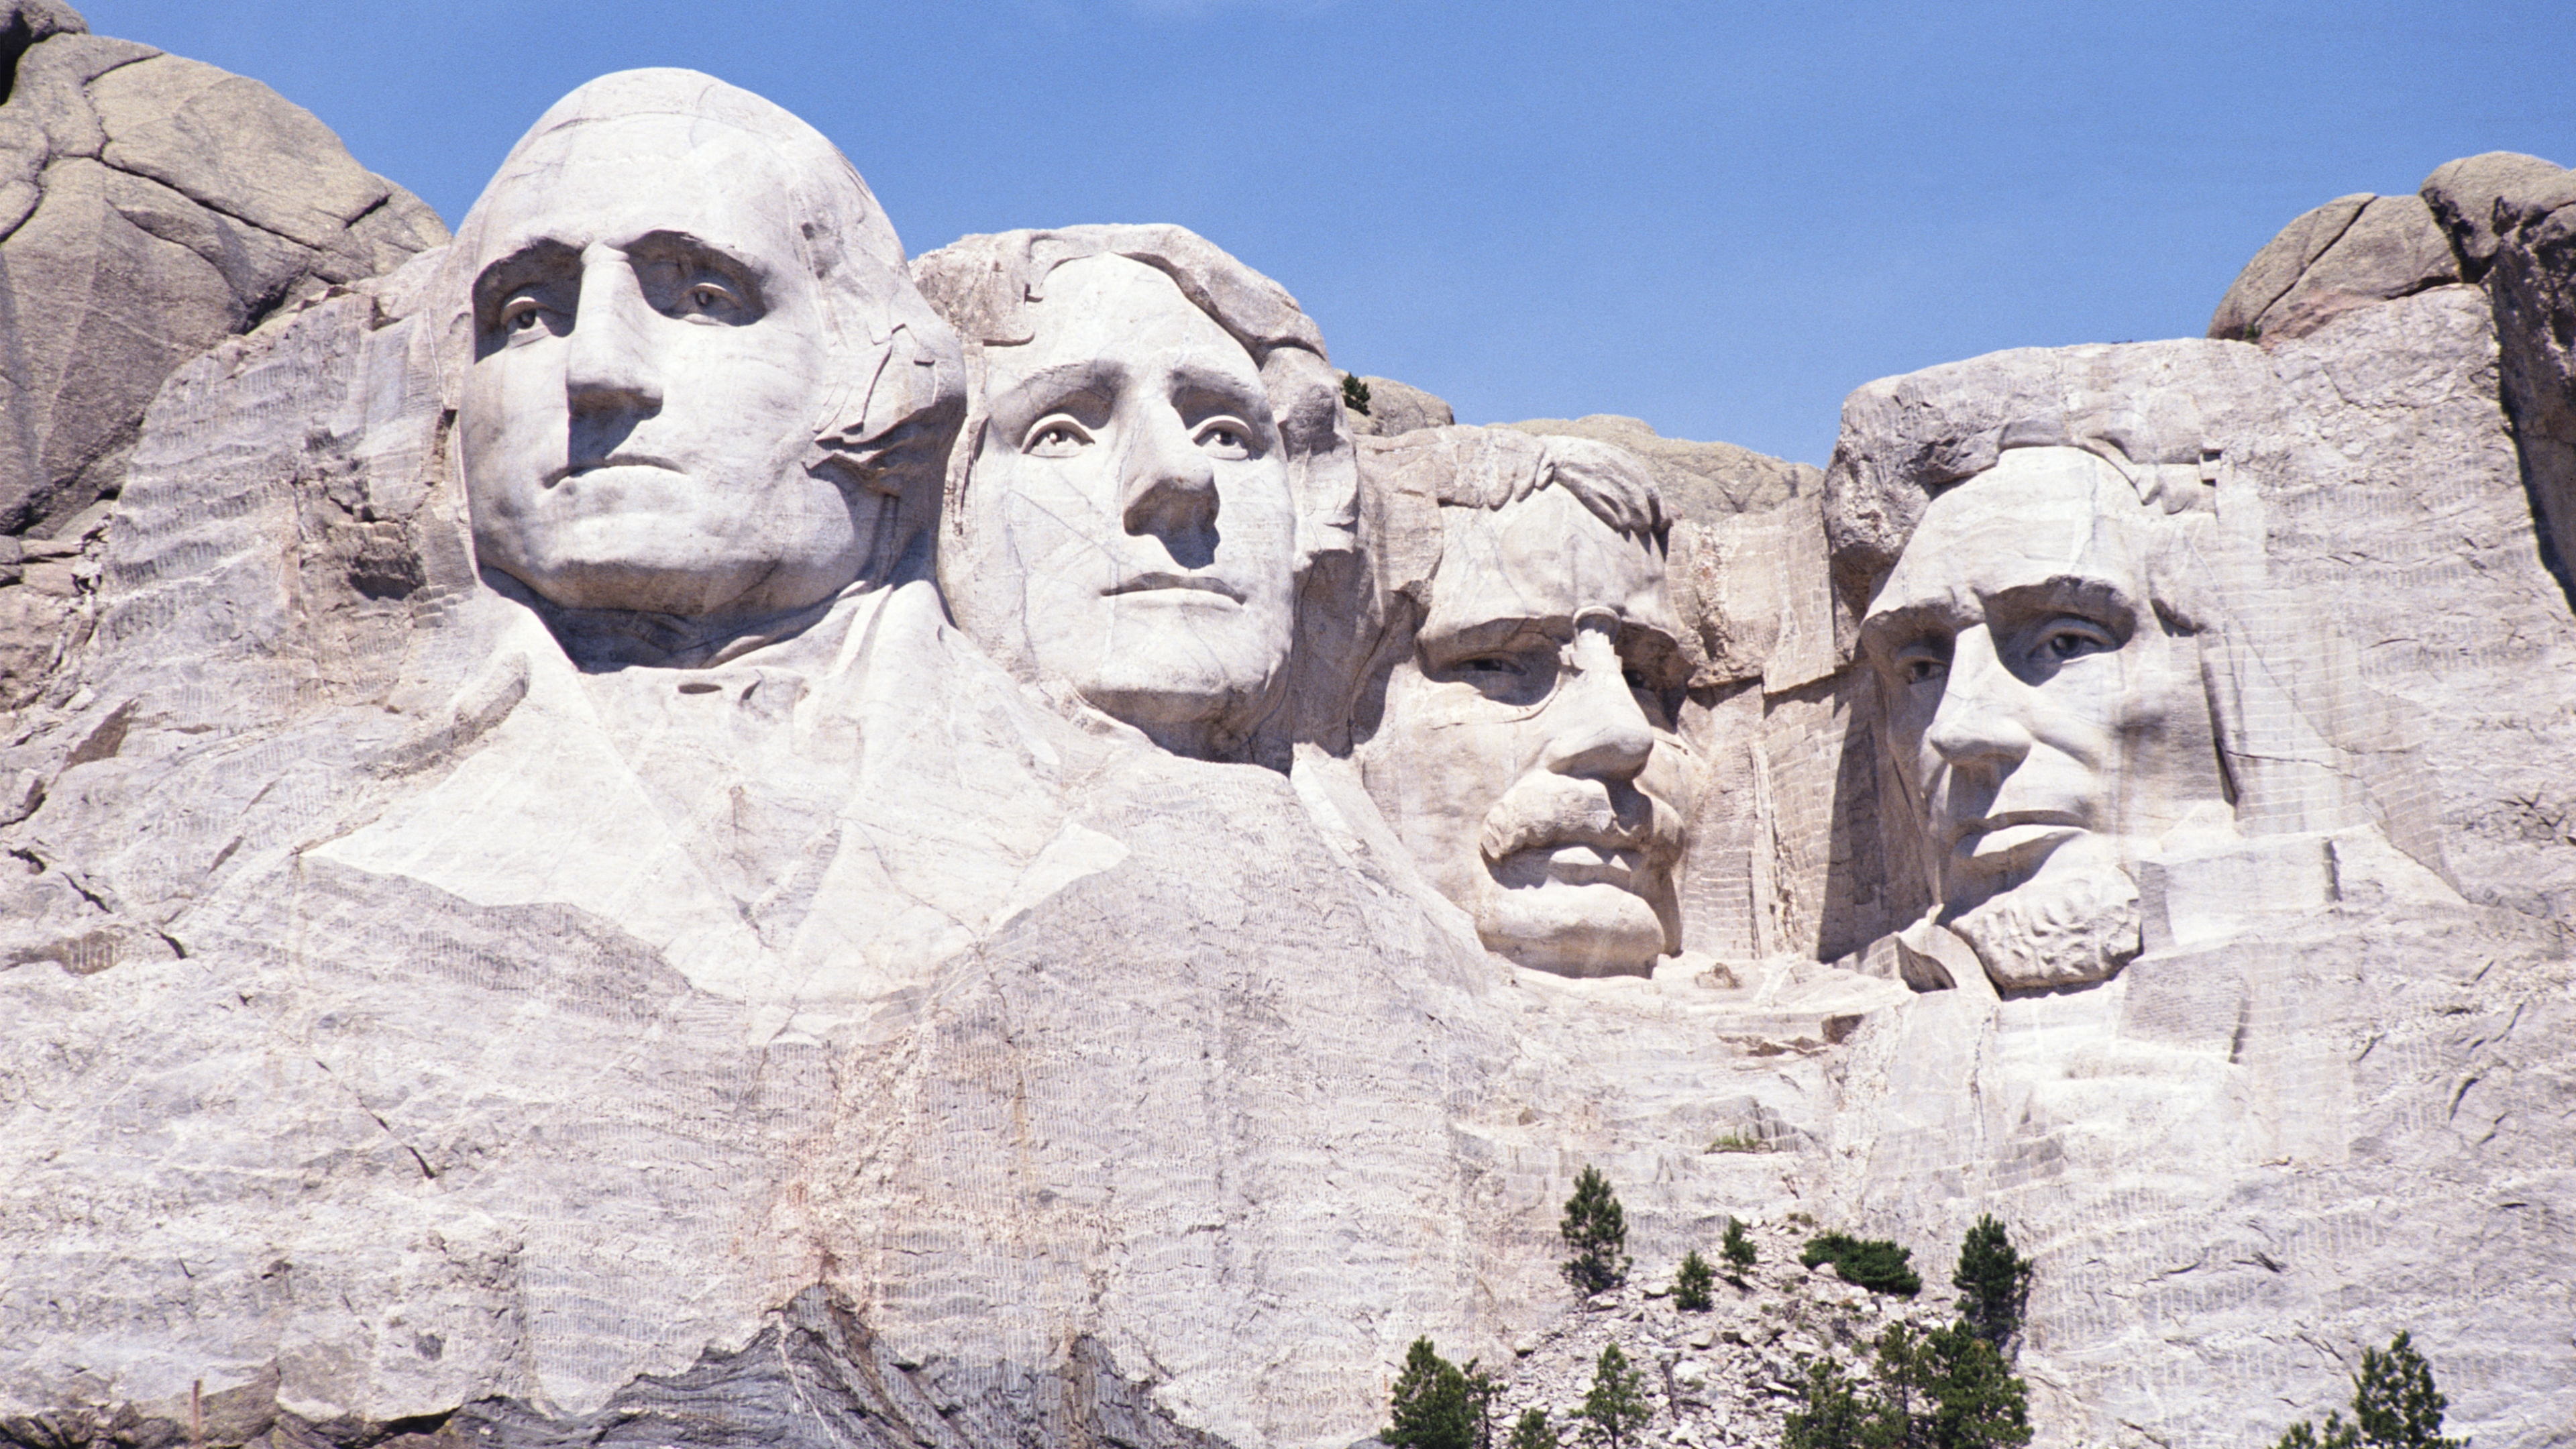 Mount Rushmore during the day